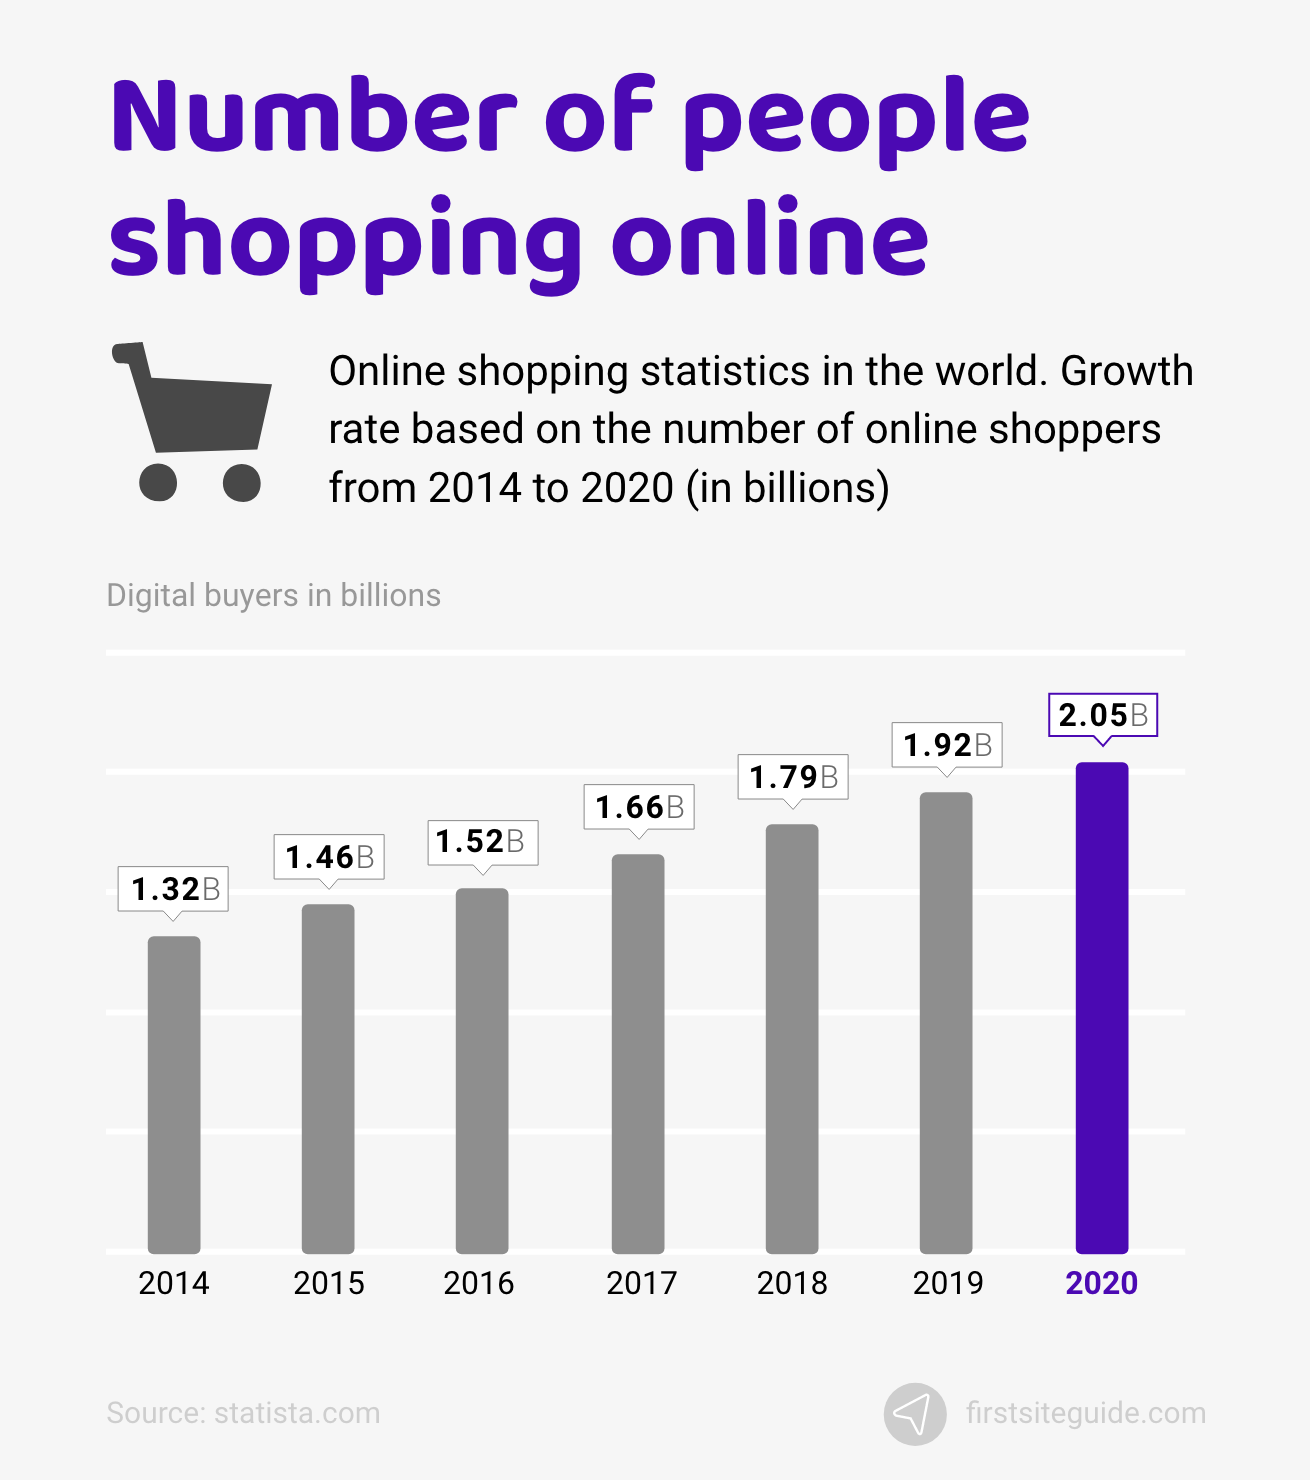 Number of people shopping online